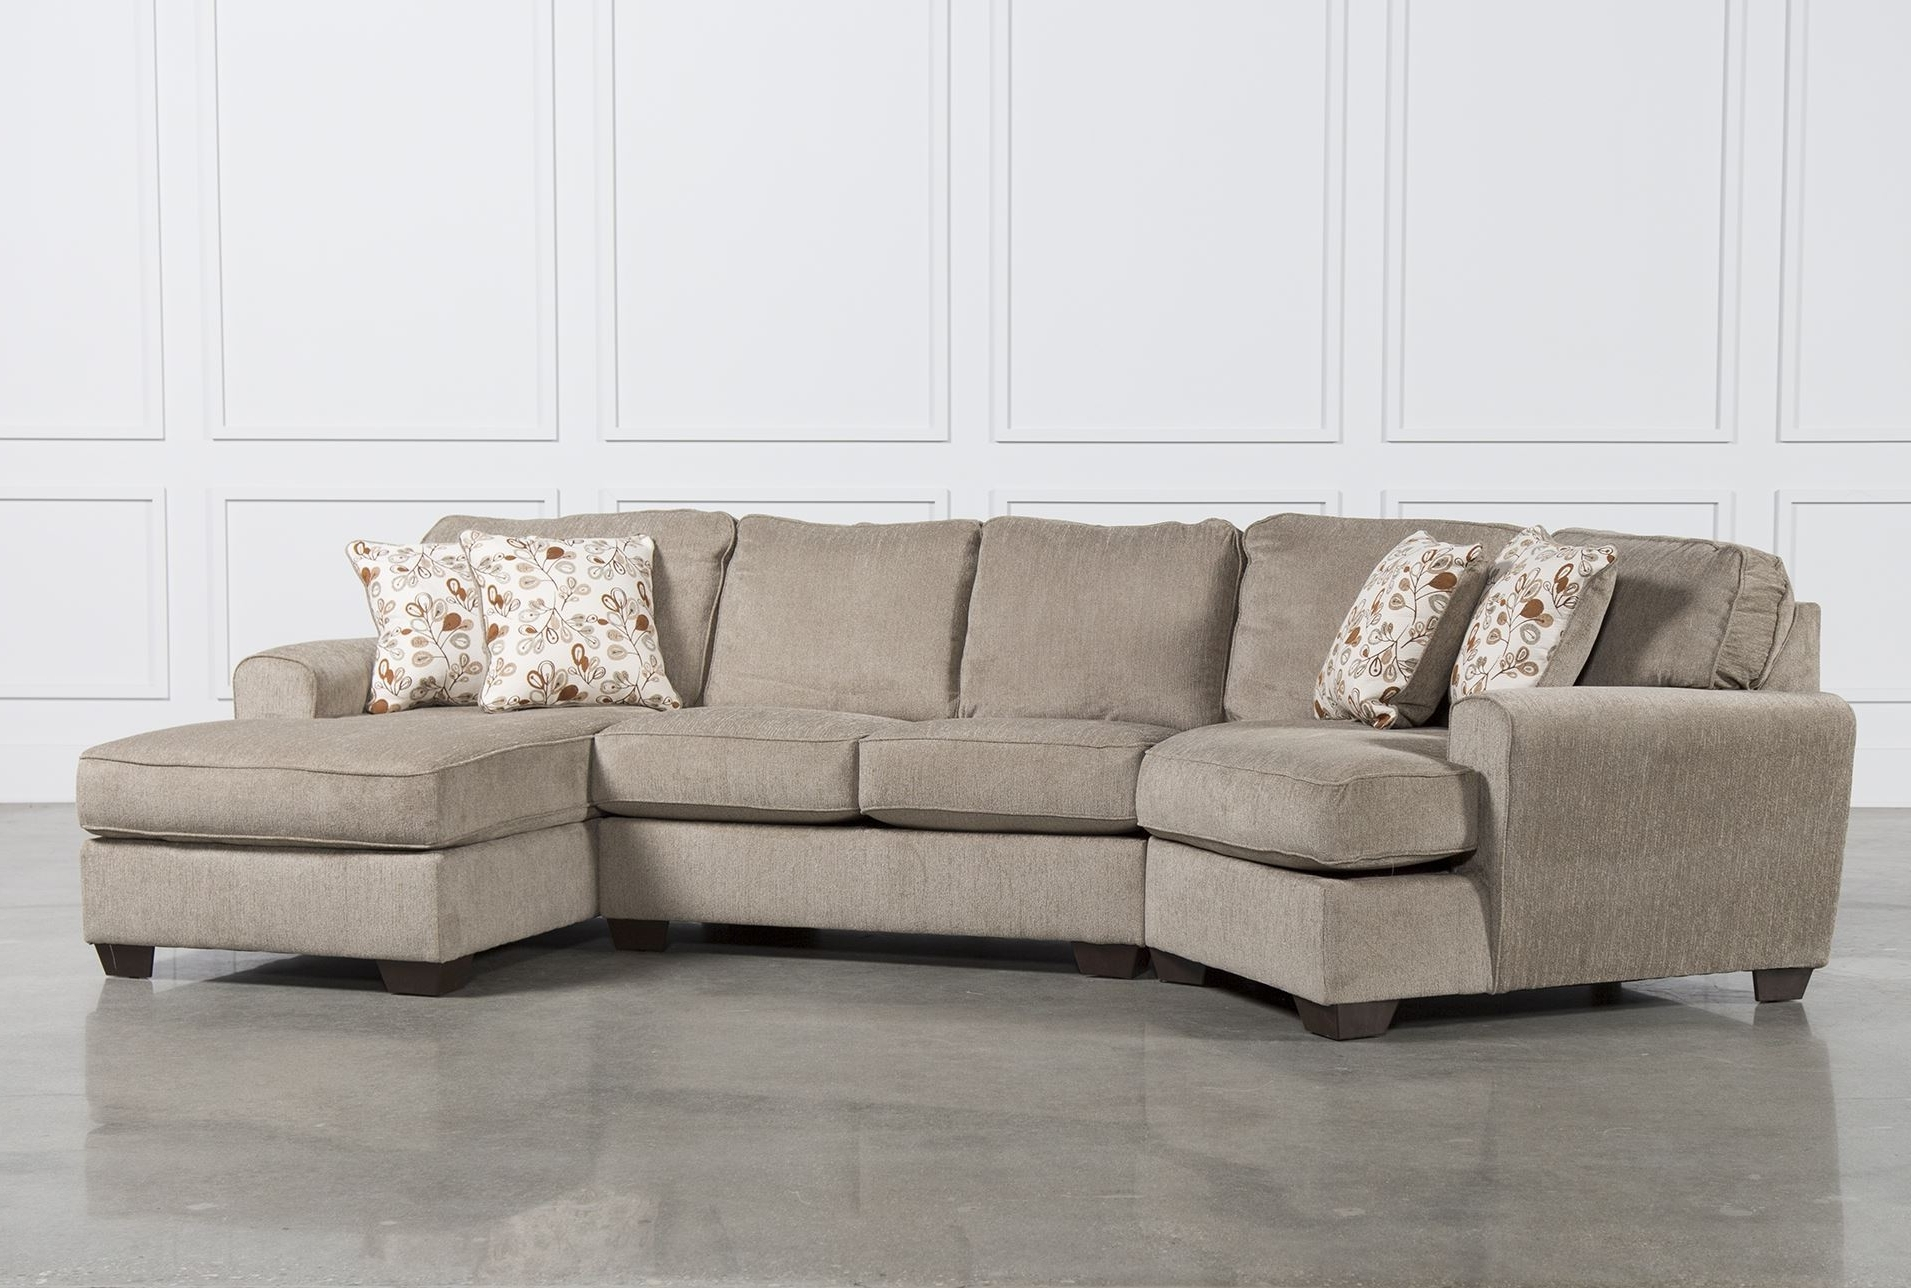 Furniture : Sectional Sofa Fabric Rc 216 088 Recliner Corner Couch With Regard To Most Popular El Paso Sectional Sofas (View 5 of 20)